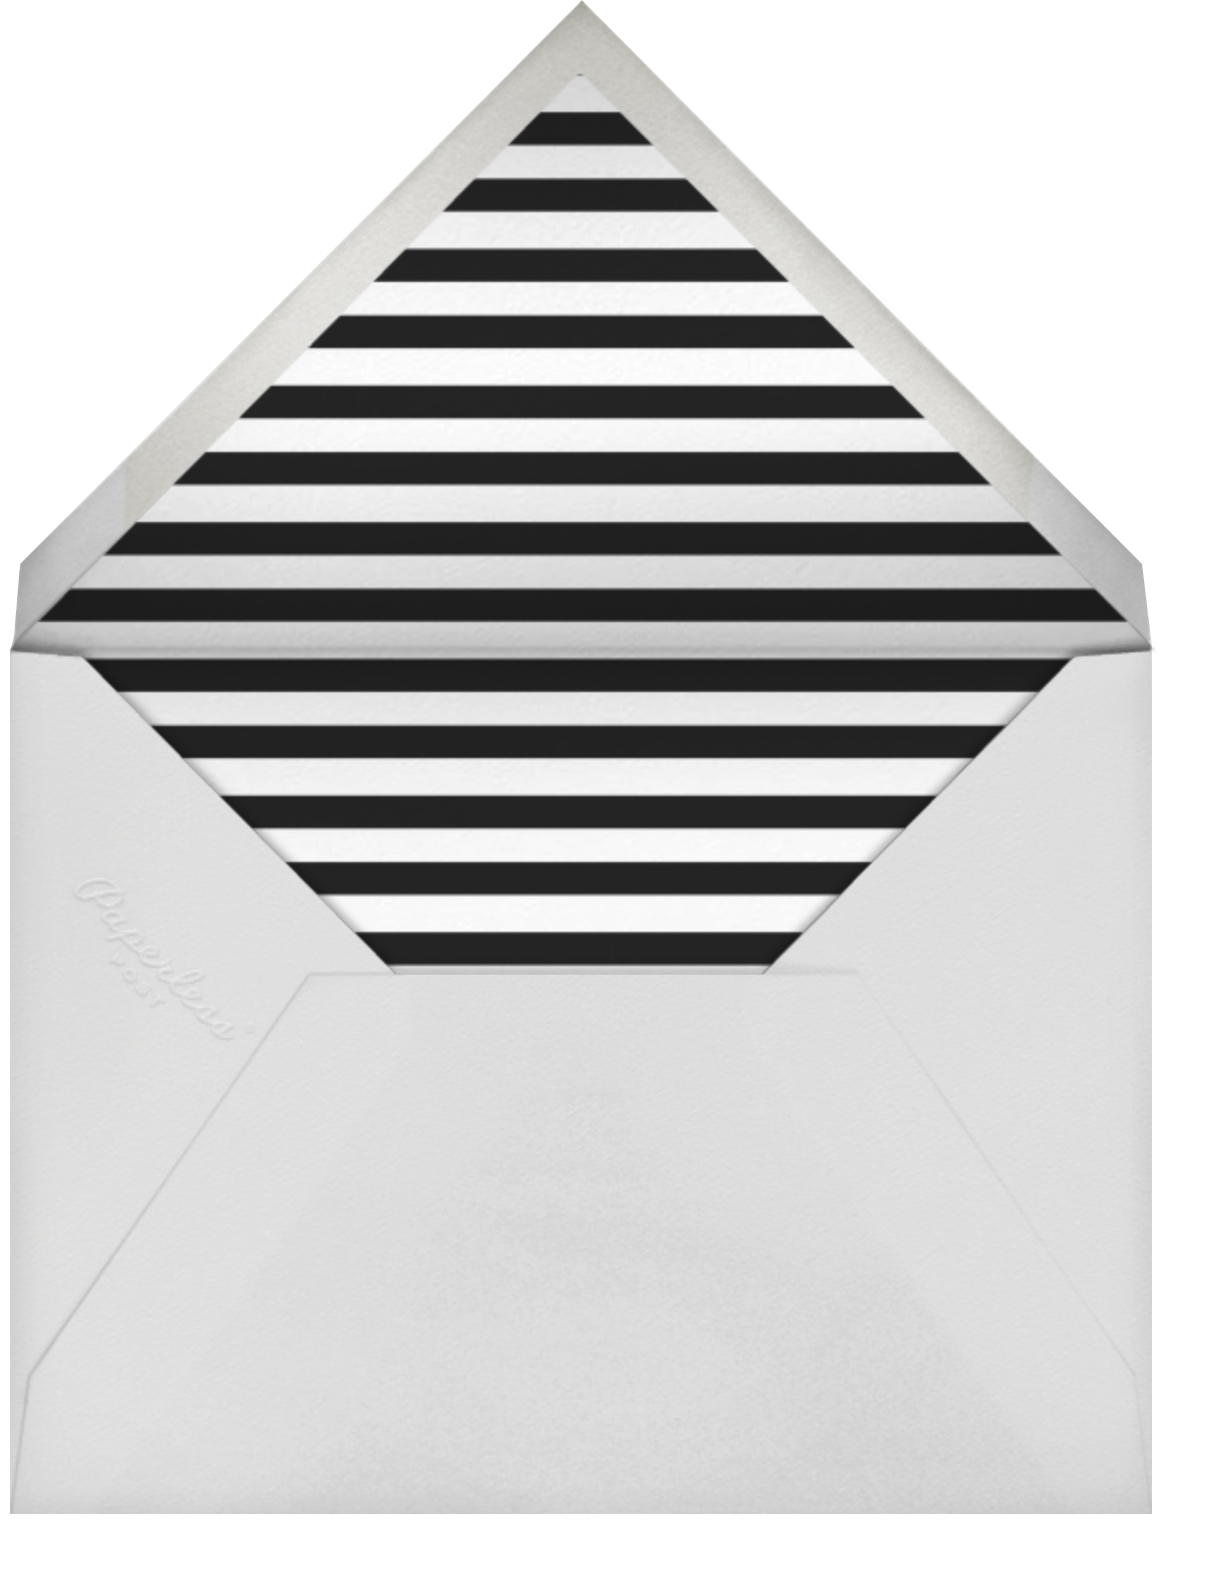 Typographic II (Stationery) - White - kate spade new york - General - envelope back